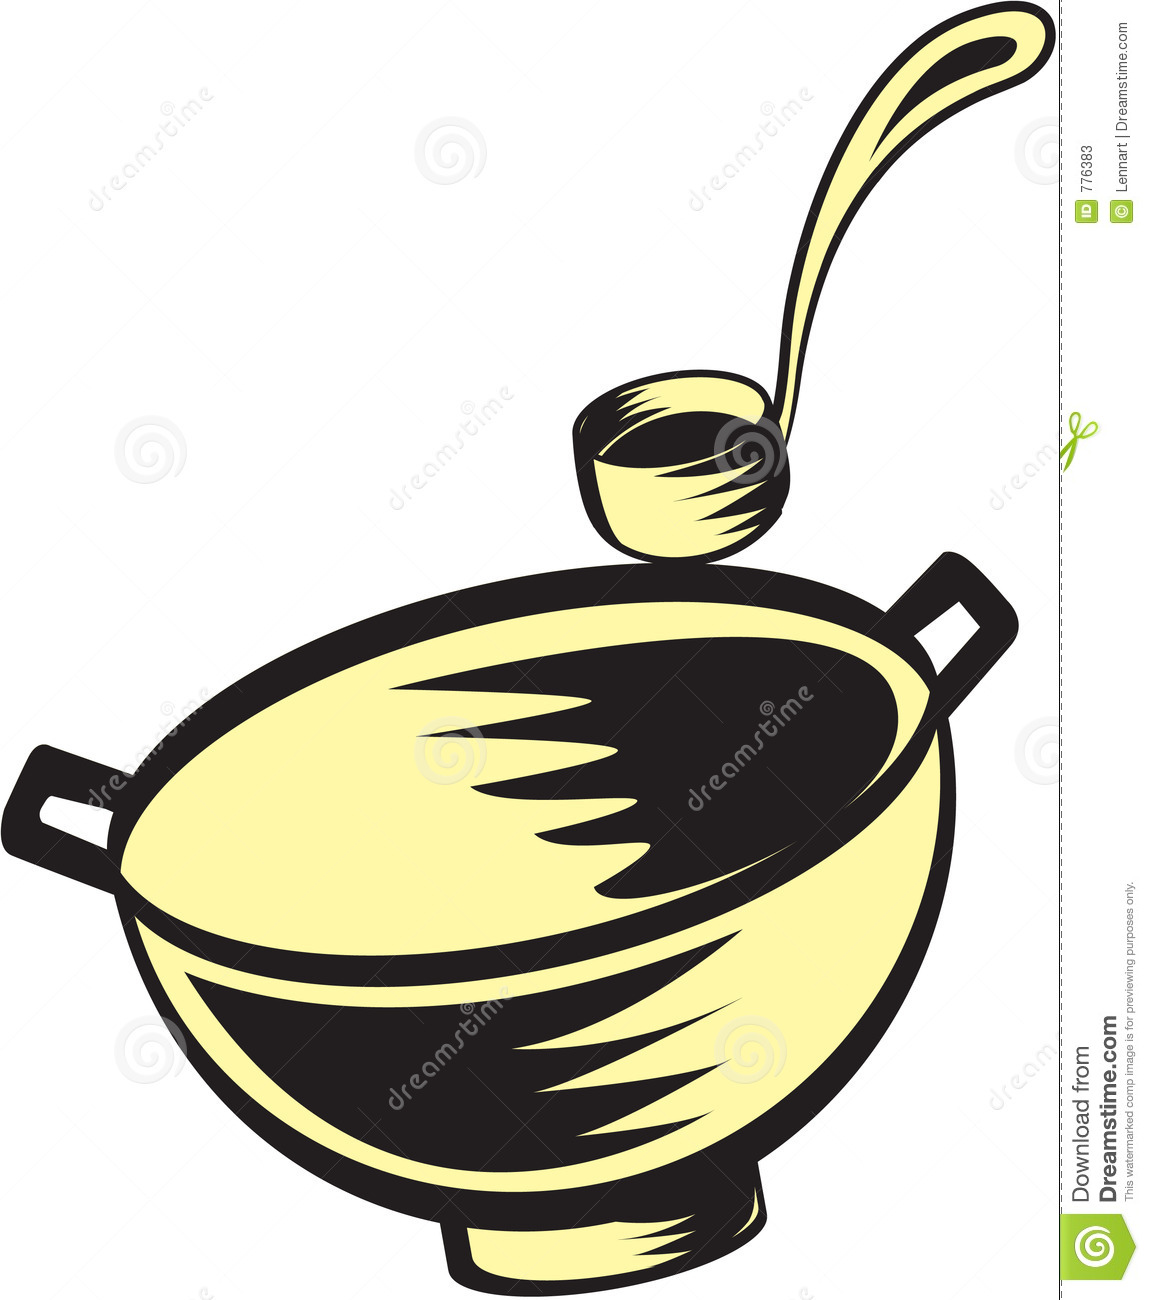 Soup Spoon Clipart Soup Bowl 776383 Jpg